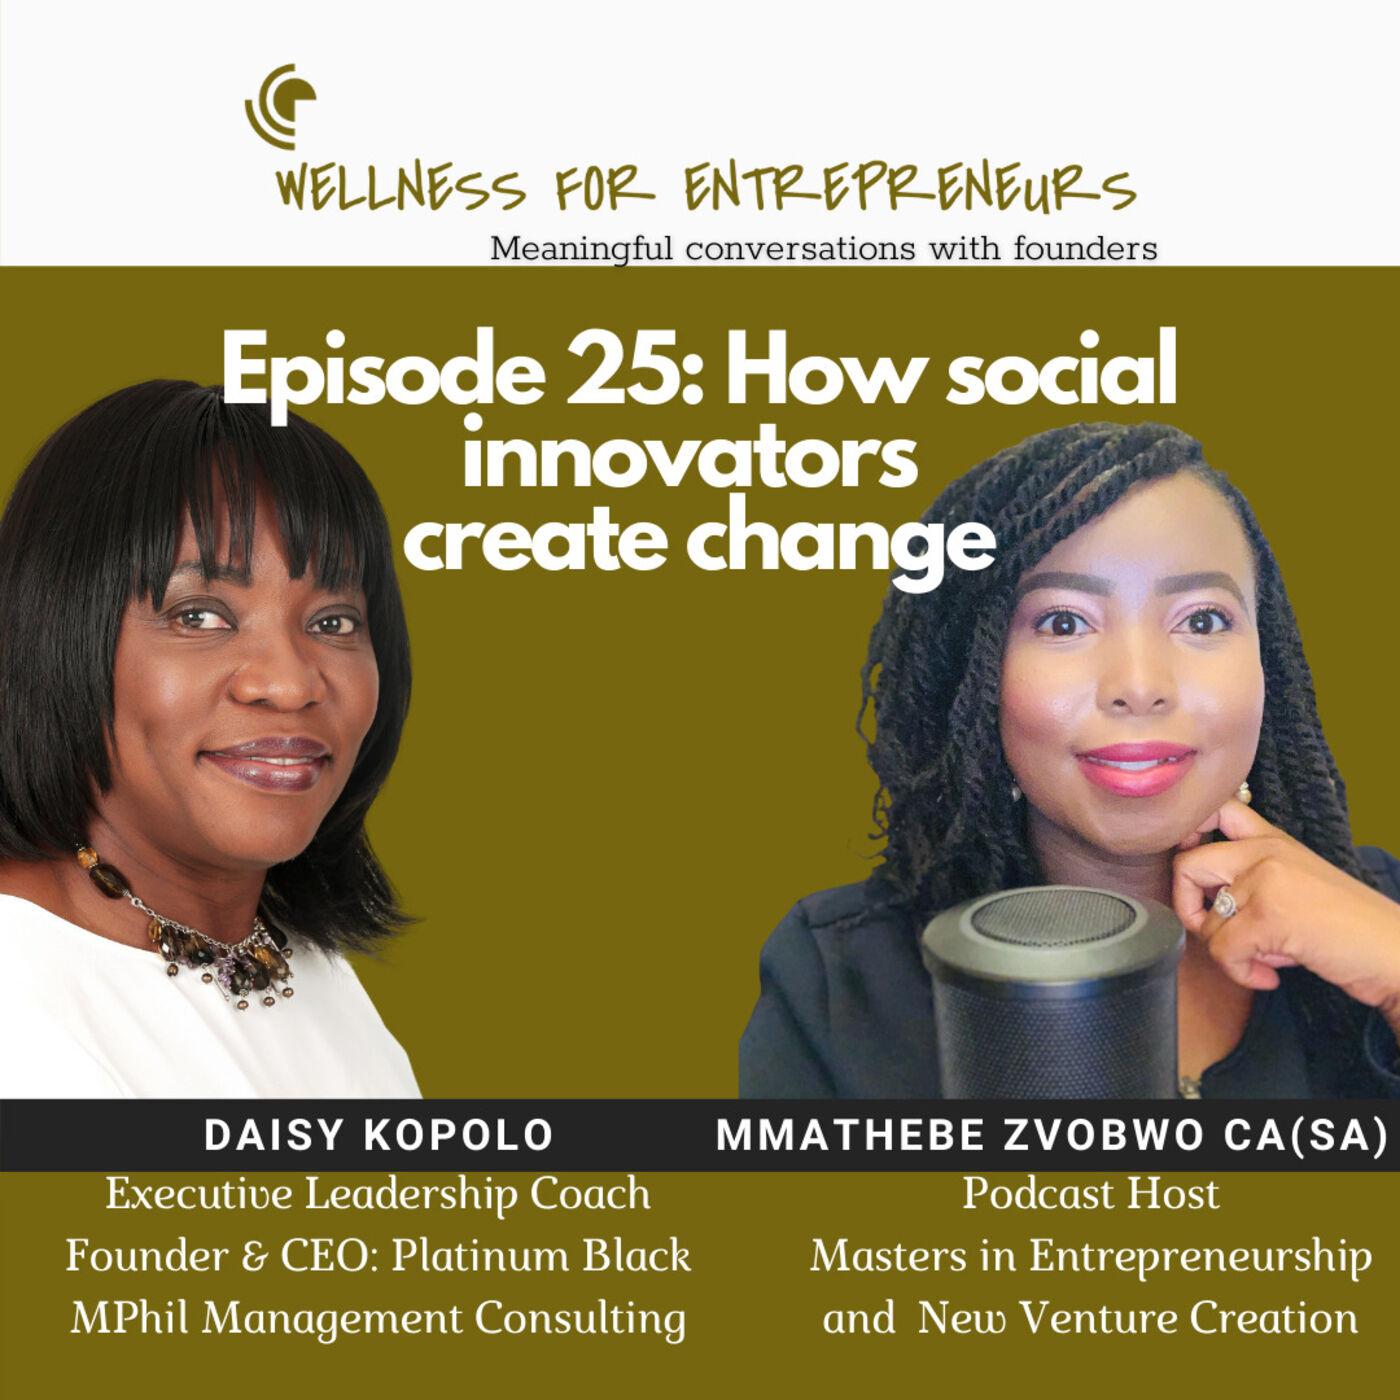 Episode 25, How social innovators create lasting change, with Daisy Kopolo